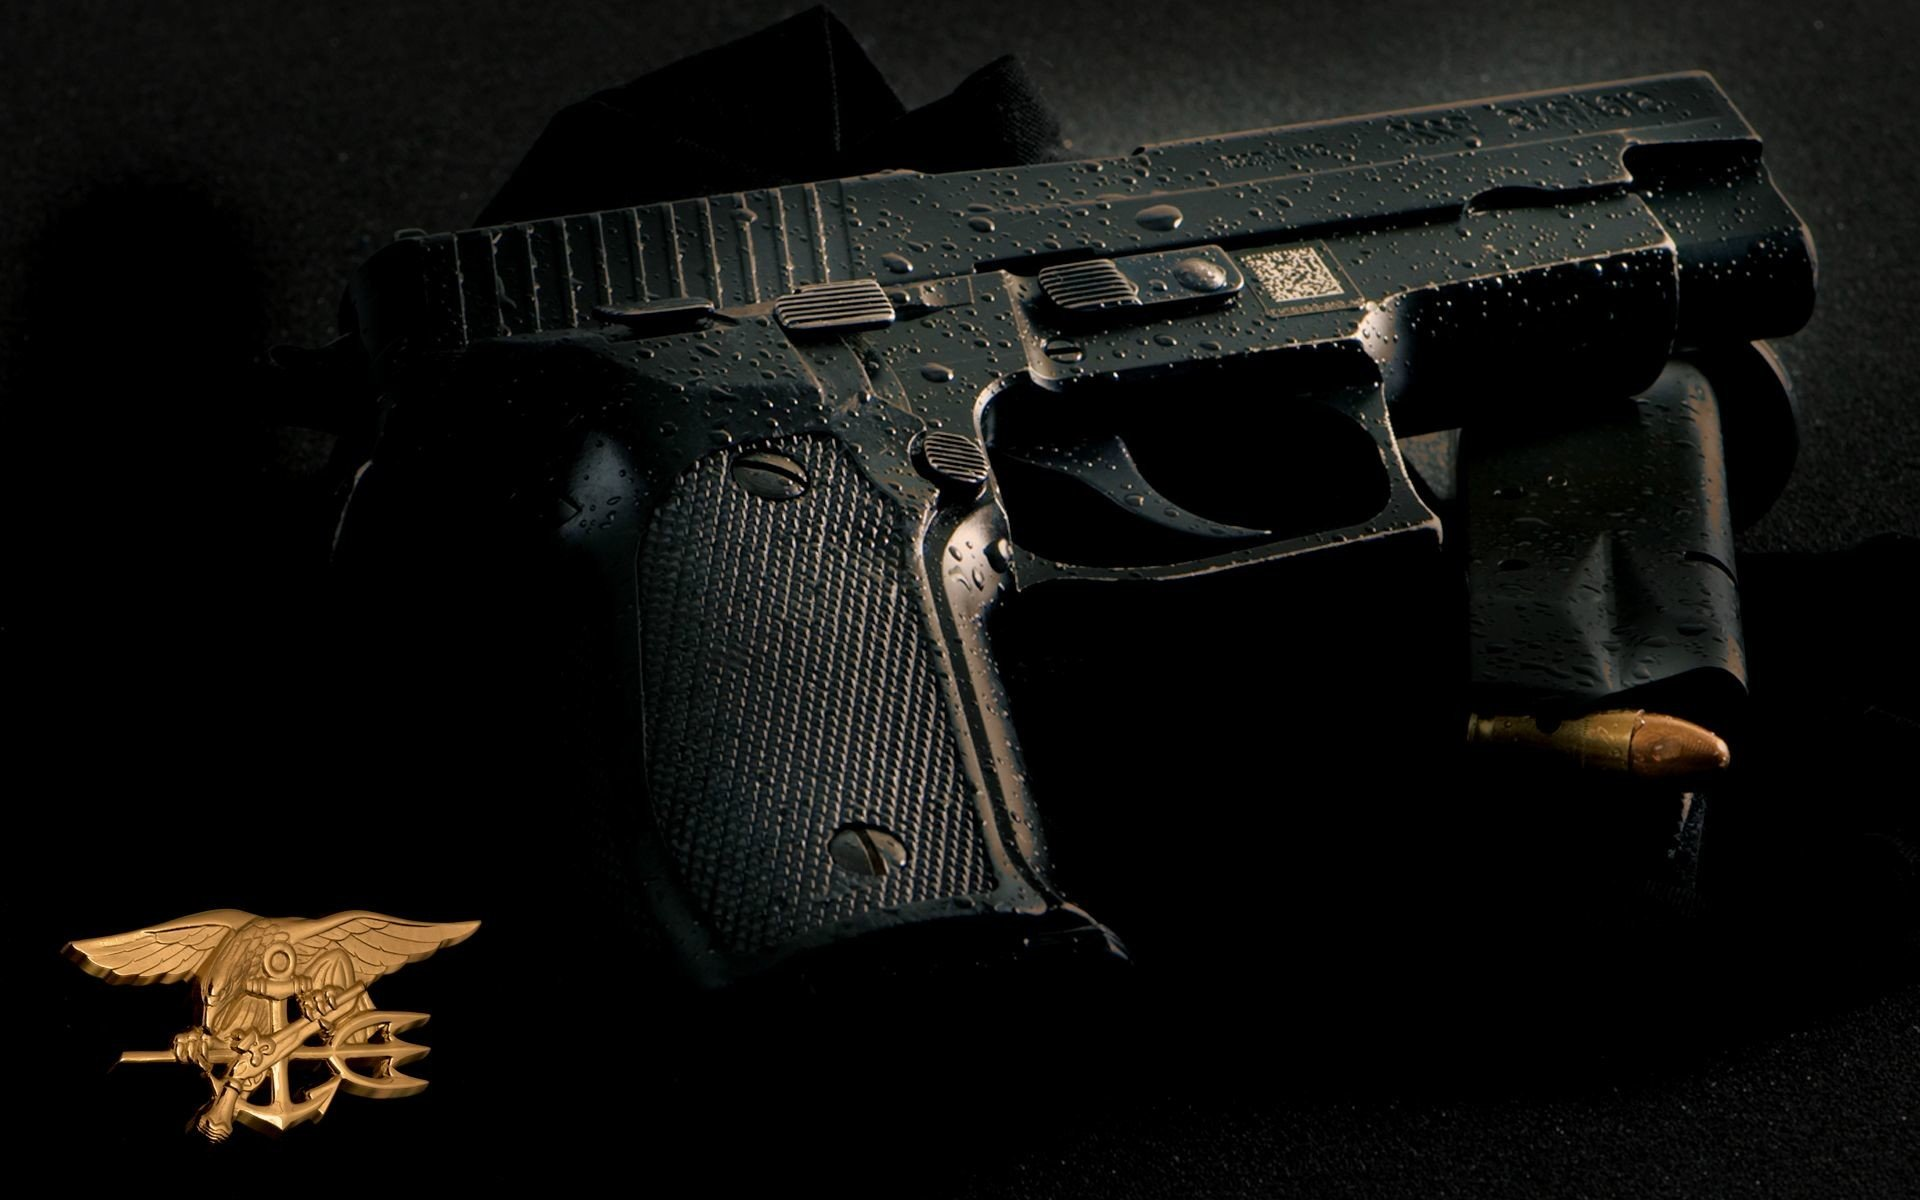 IPhone Navy Seal Wallpaper 62 images 1920x1200